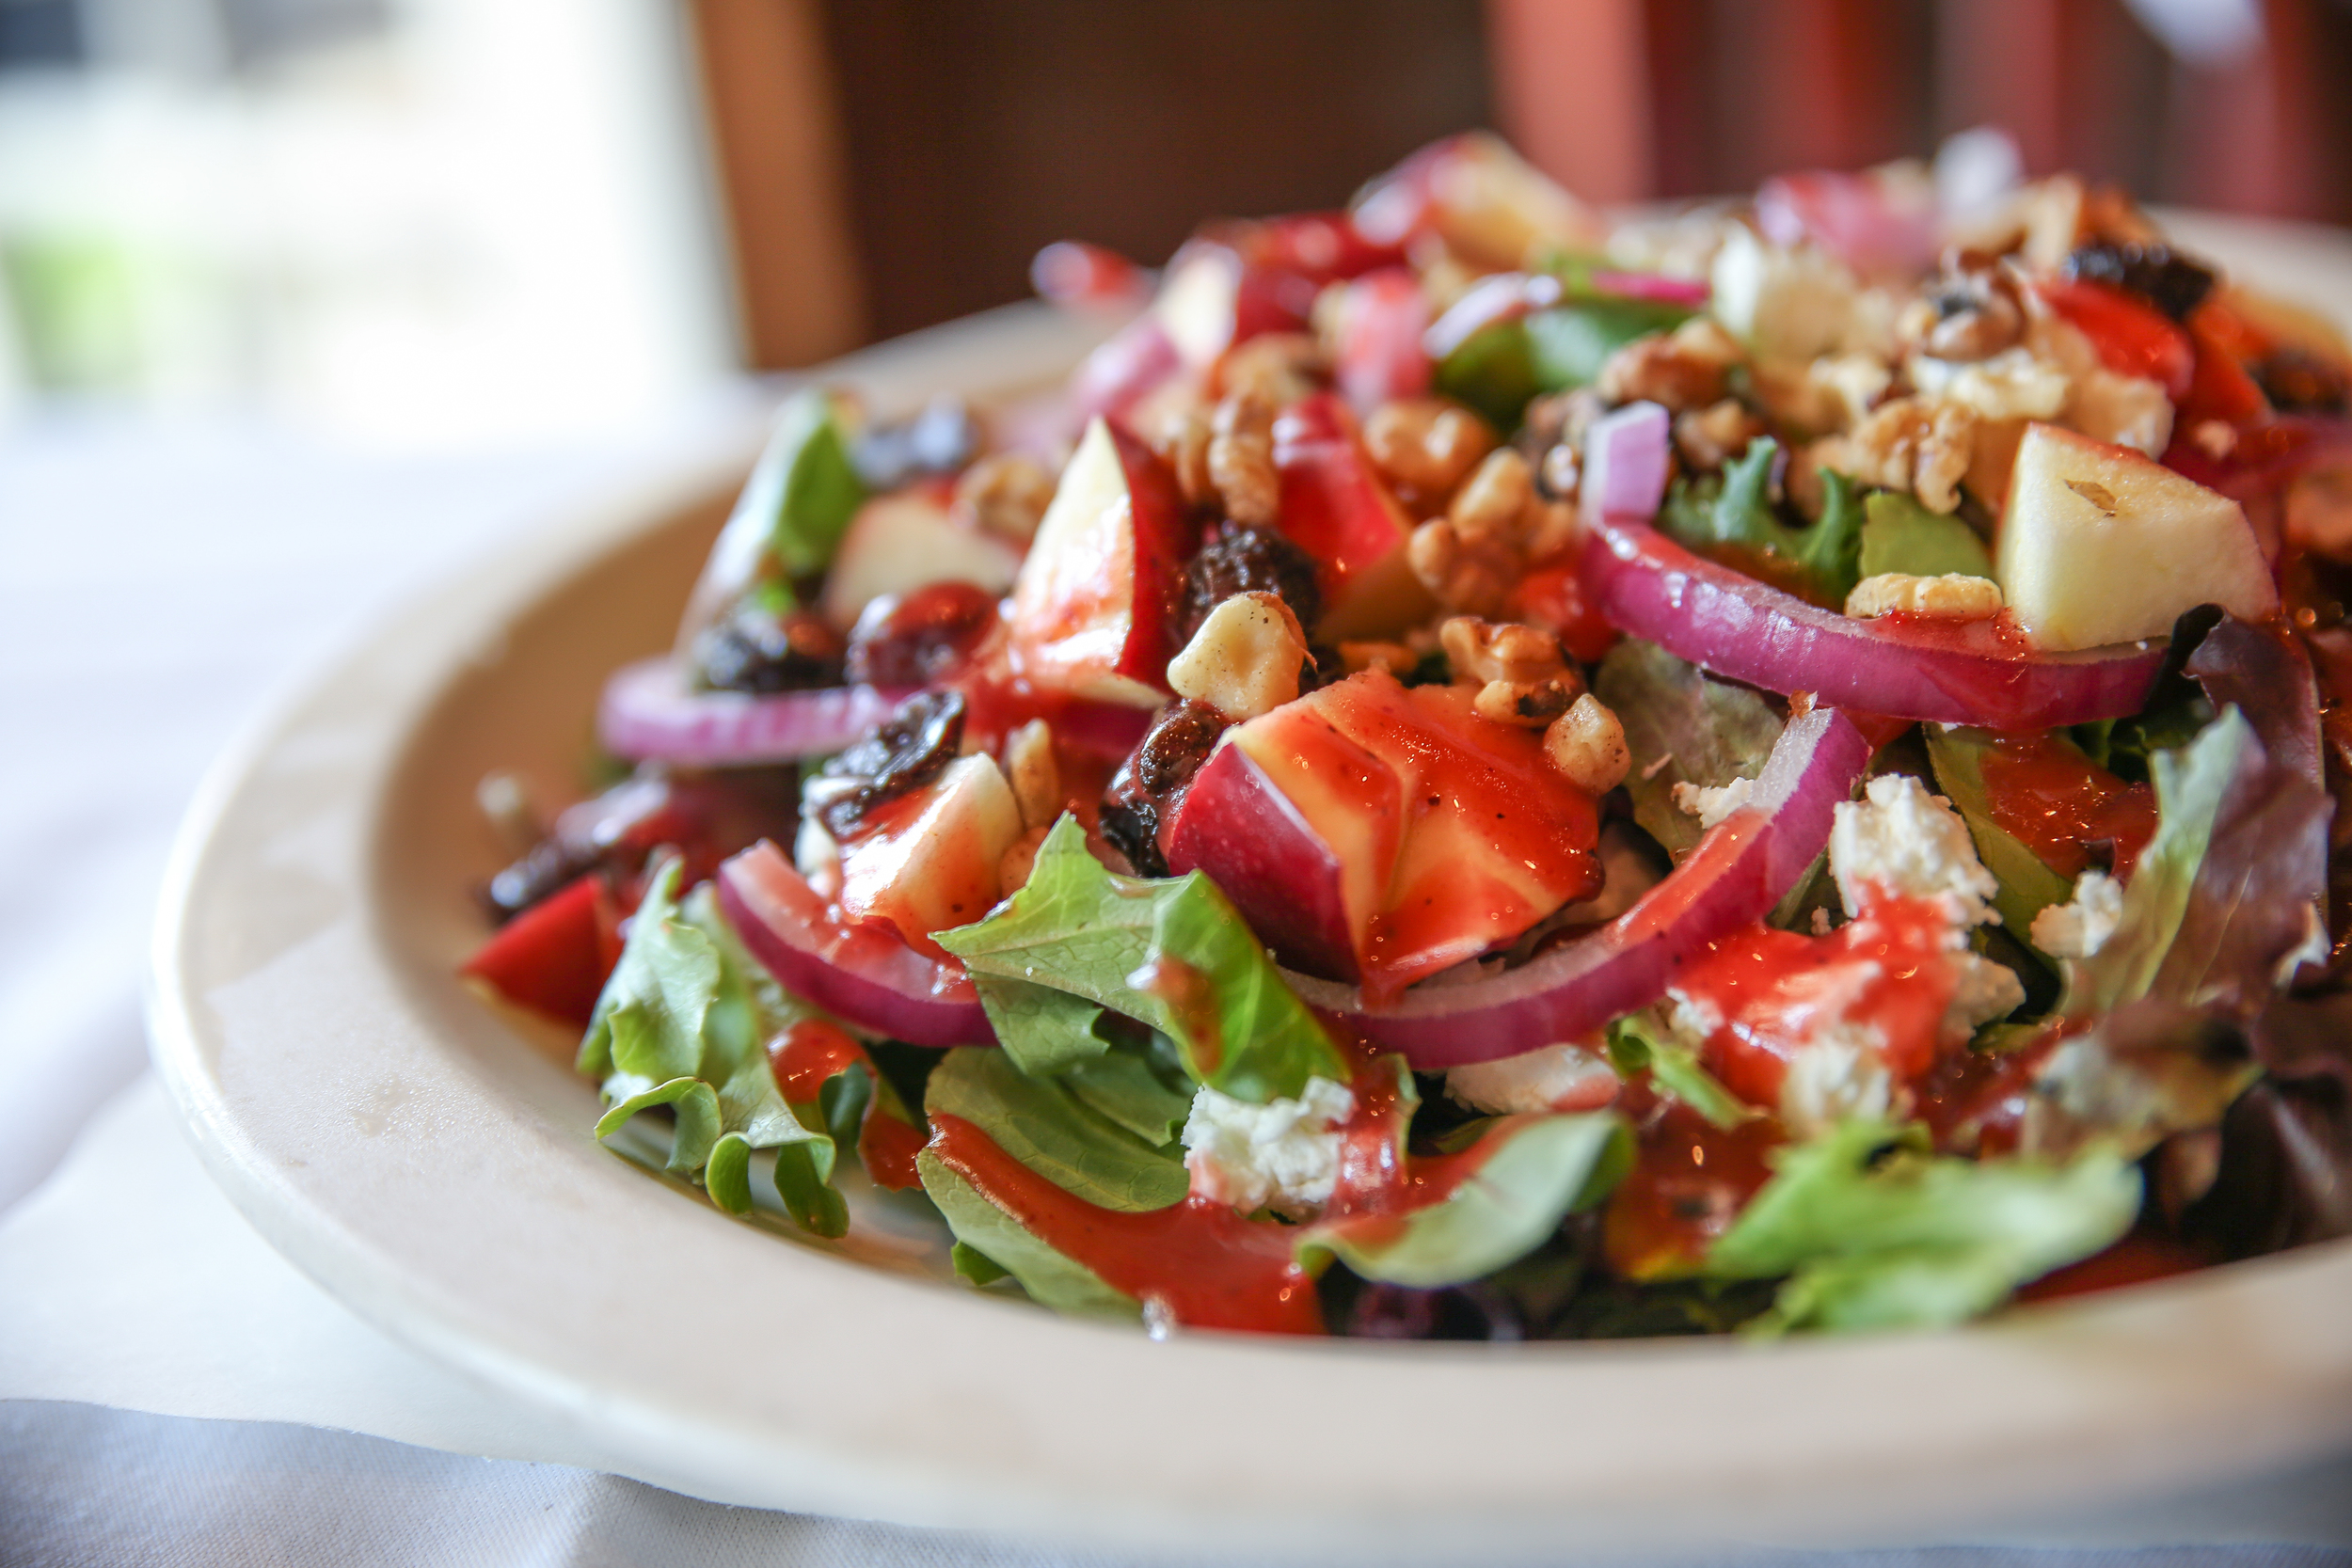 The Goat Cheese and Apple Salad goes toe-to-toe with the generous entrees, bringing the richness of goat cheese, balanced with toasted walnuts, raisins, lettuce and red onions topped with a light and springy raspberry vinaigrette.